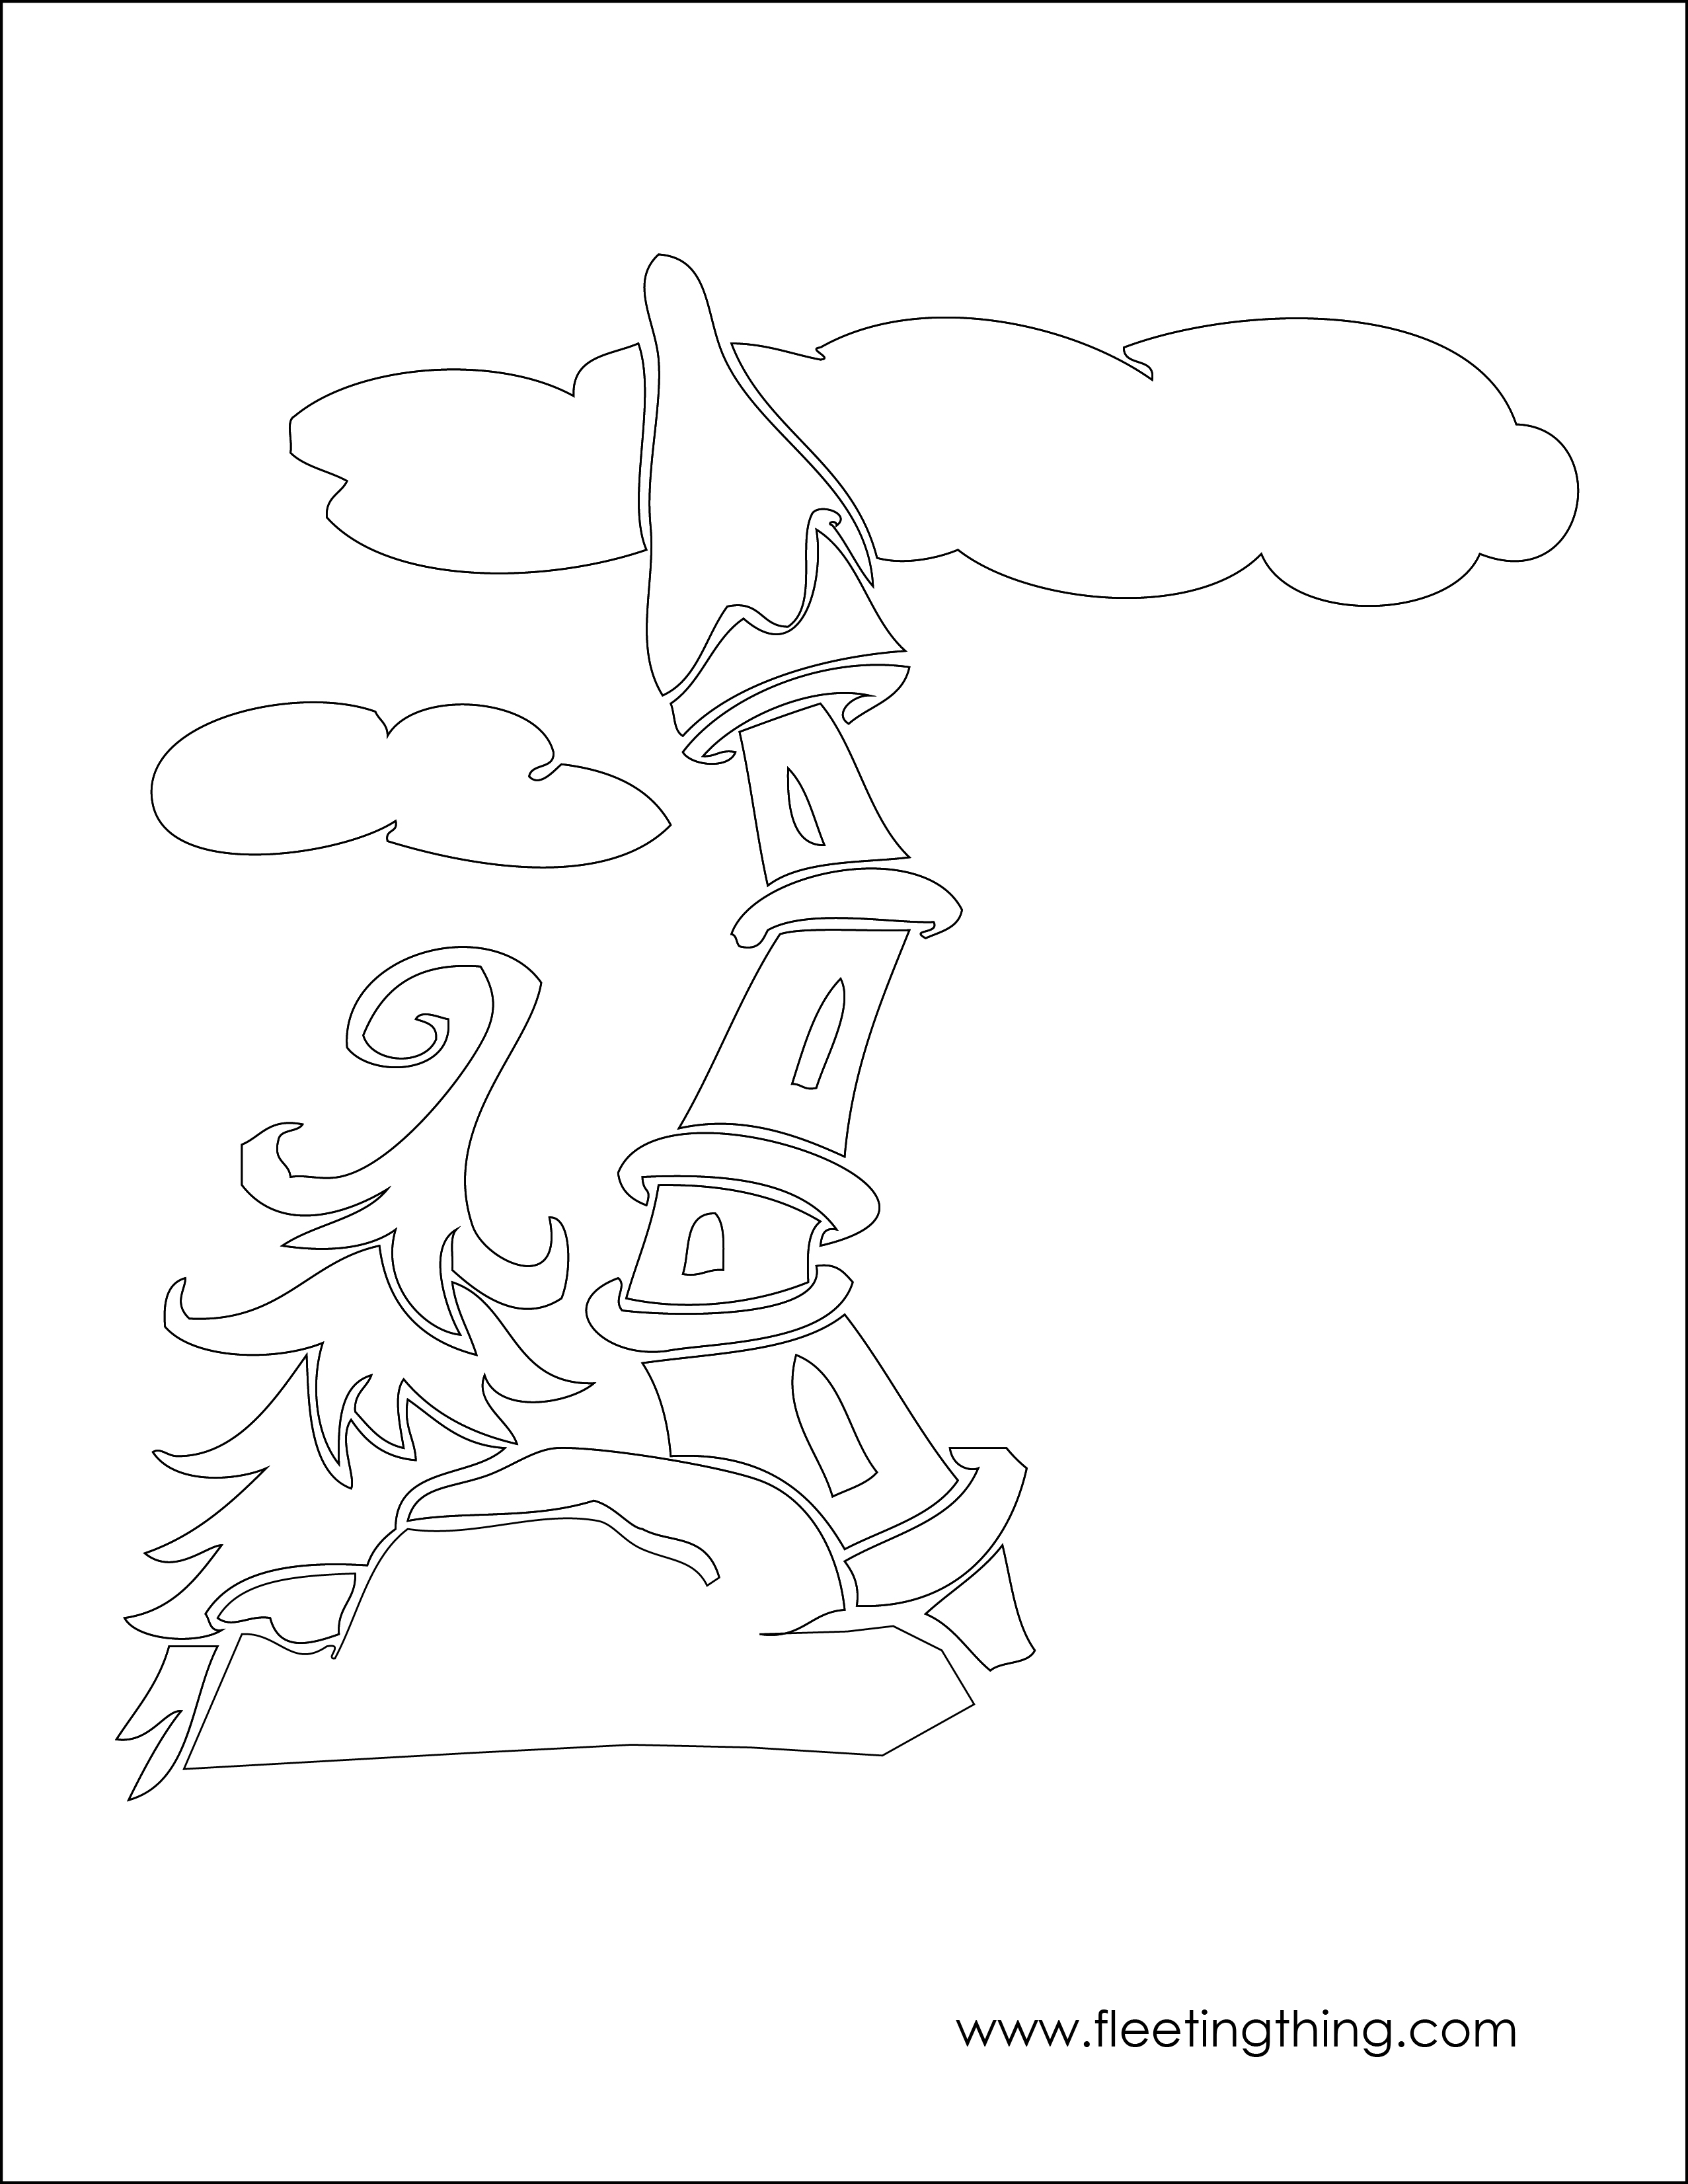 Whoville characters clipart graphic royalty free library Free Whoville Characters Coloring Pages, Download Free Clip ... graphic royalty free library